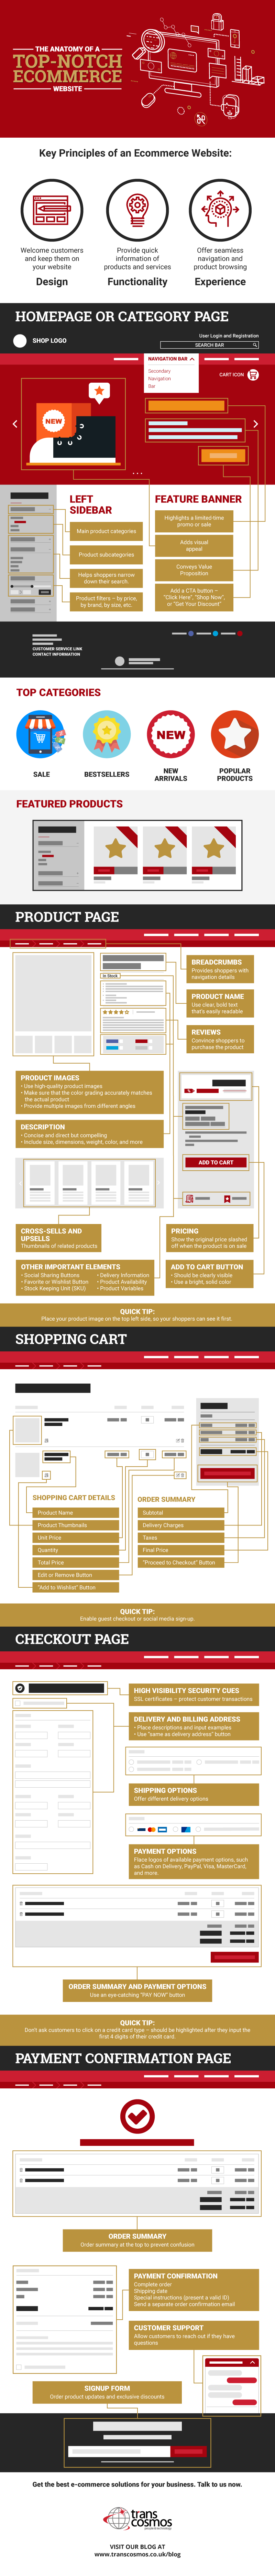 The Anatomy of a Top-Notch Ecommerce Website-infographic